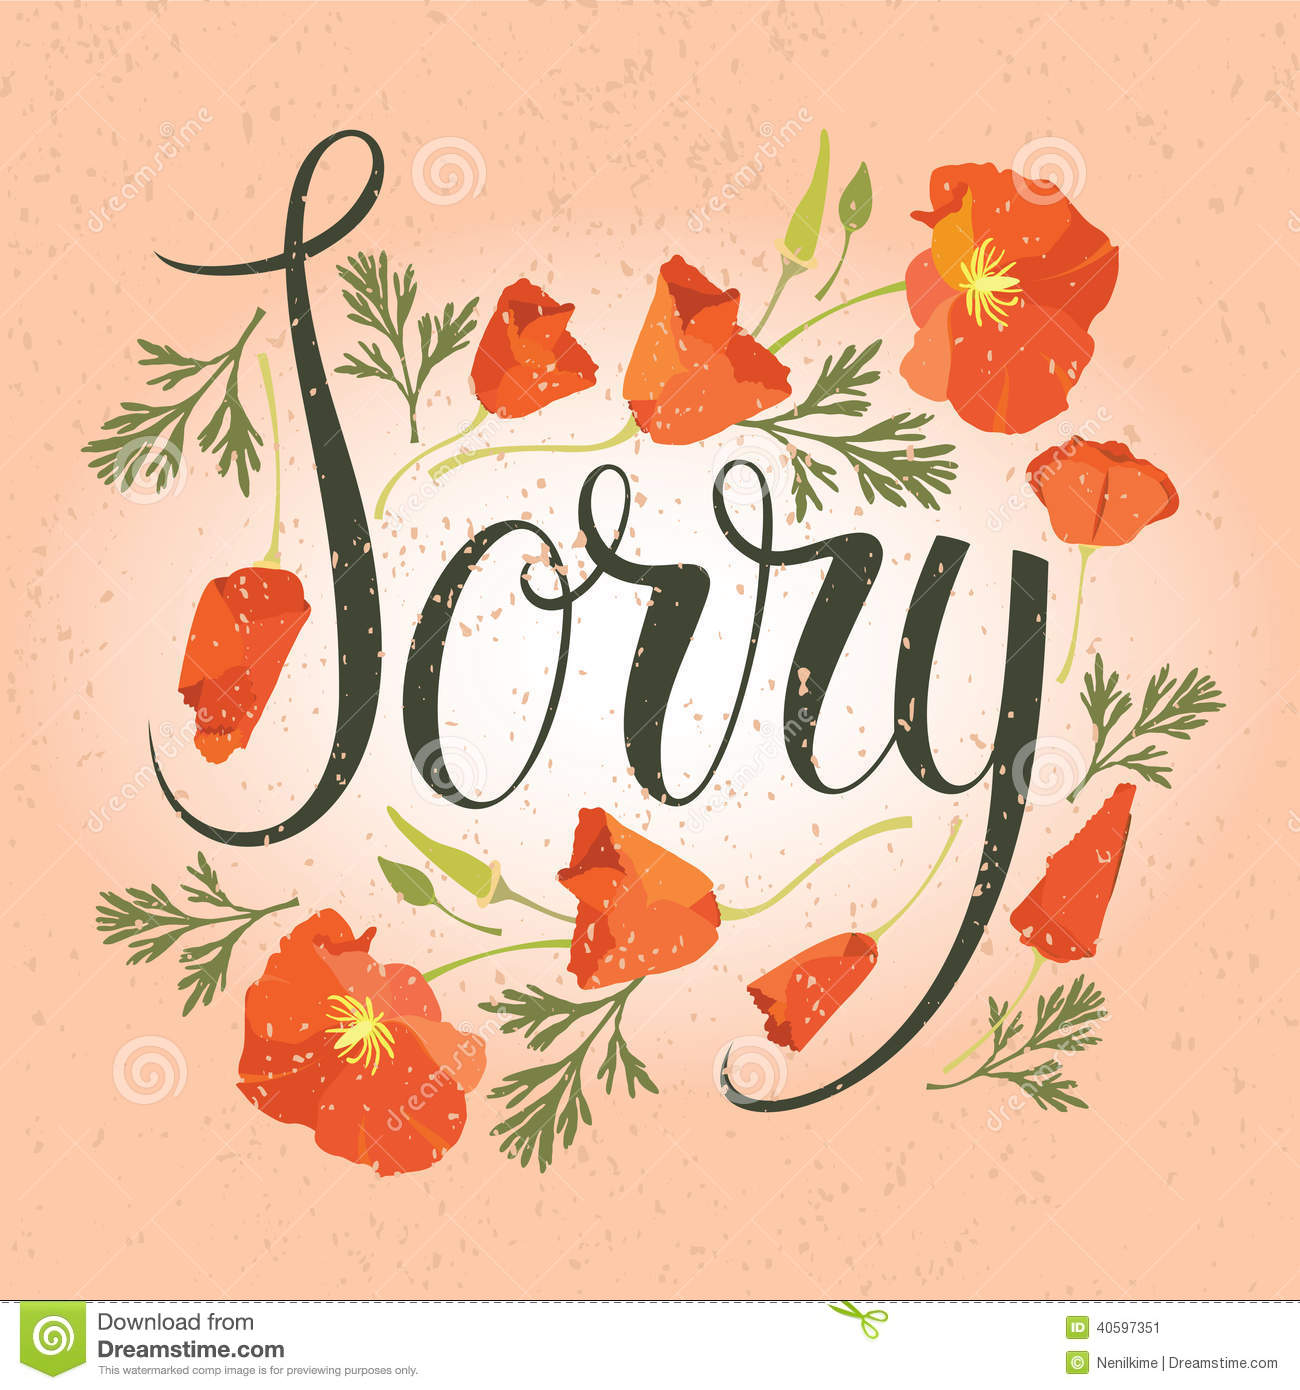 Apology Card Radiobiguatk Sorry Card Red Flowers Design 40597351 Apology Card  Free Printable Apology Cards Free Printable Apology Cards  Free Printable Sorry Cards